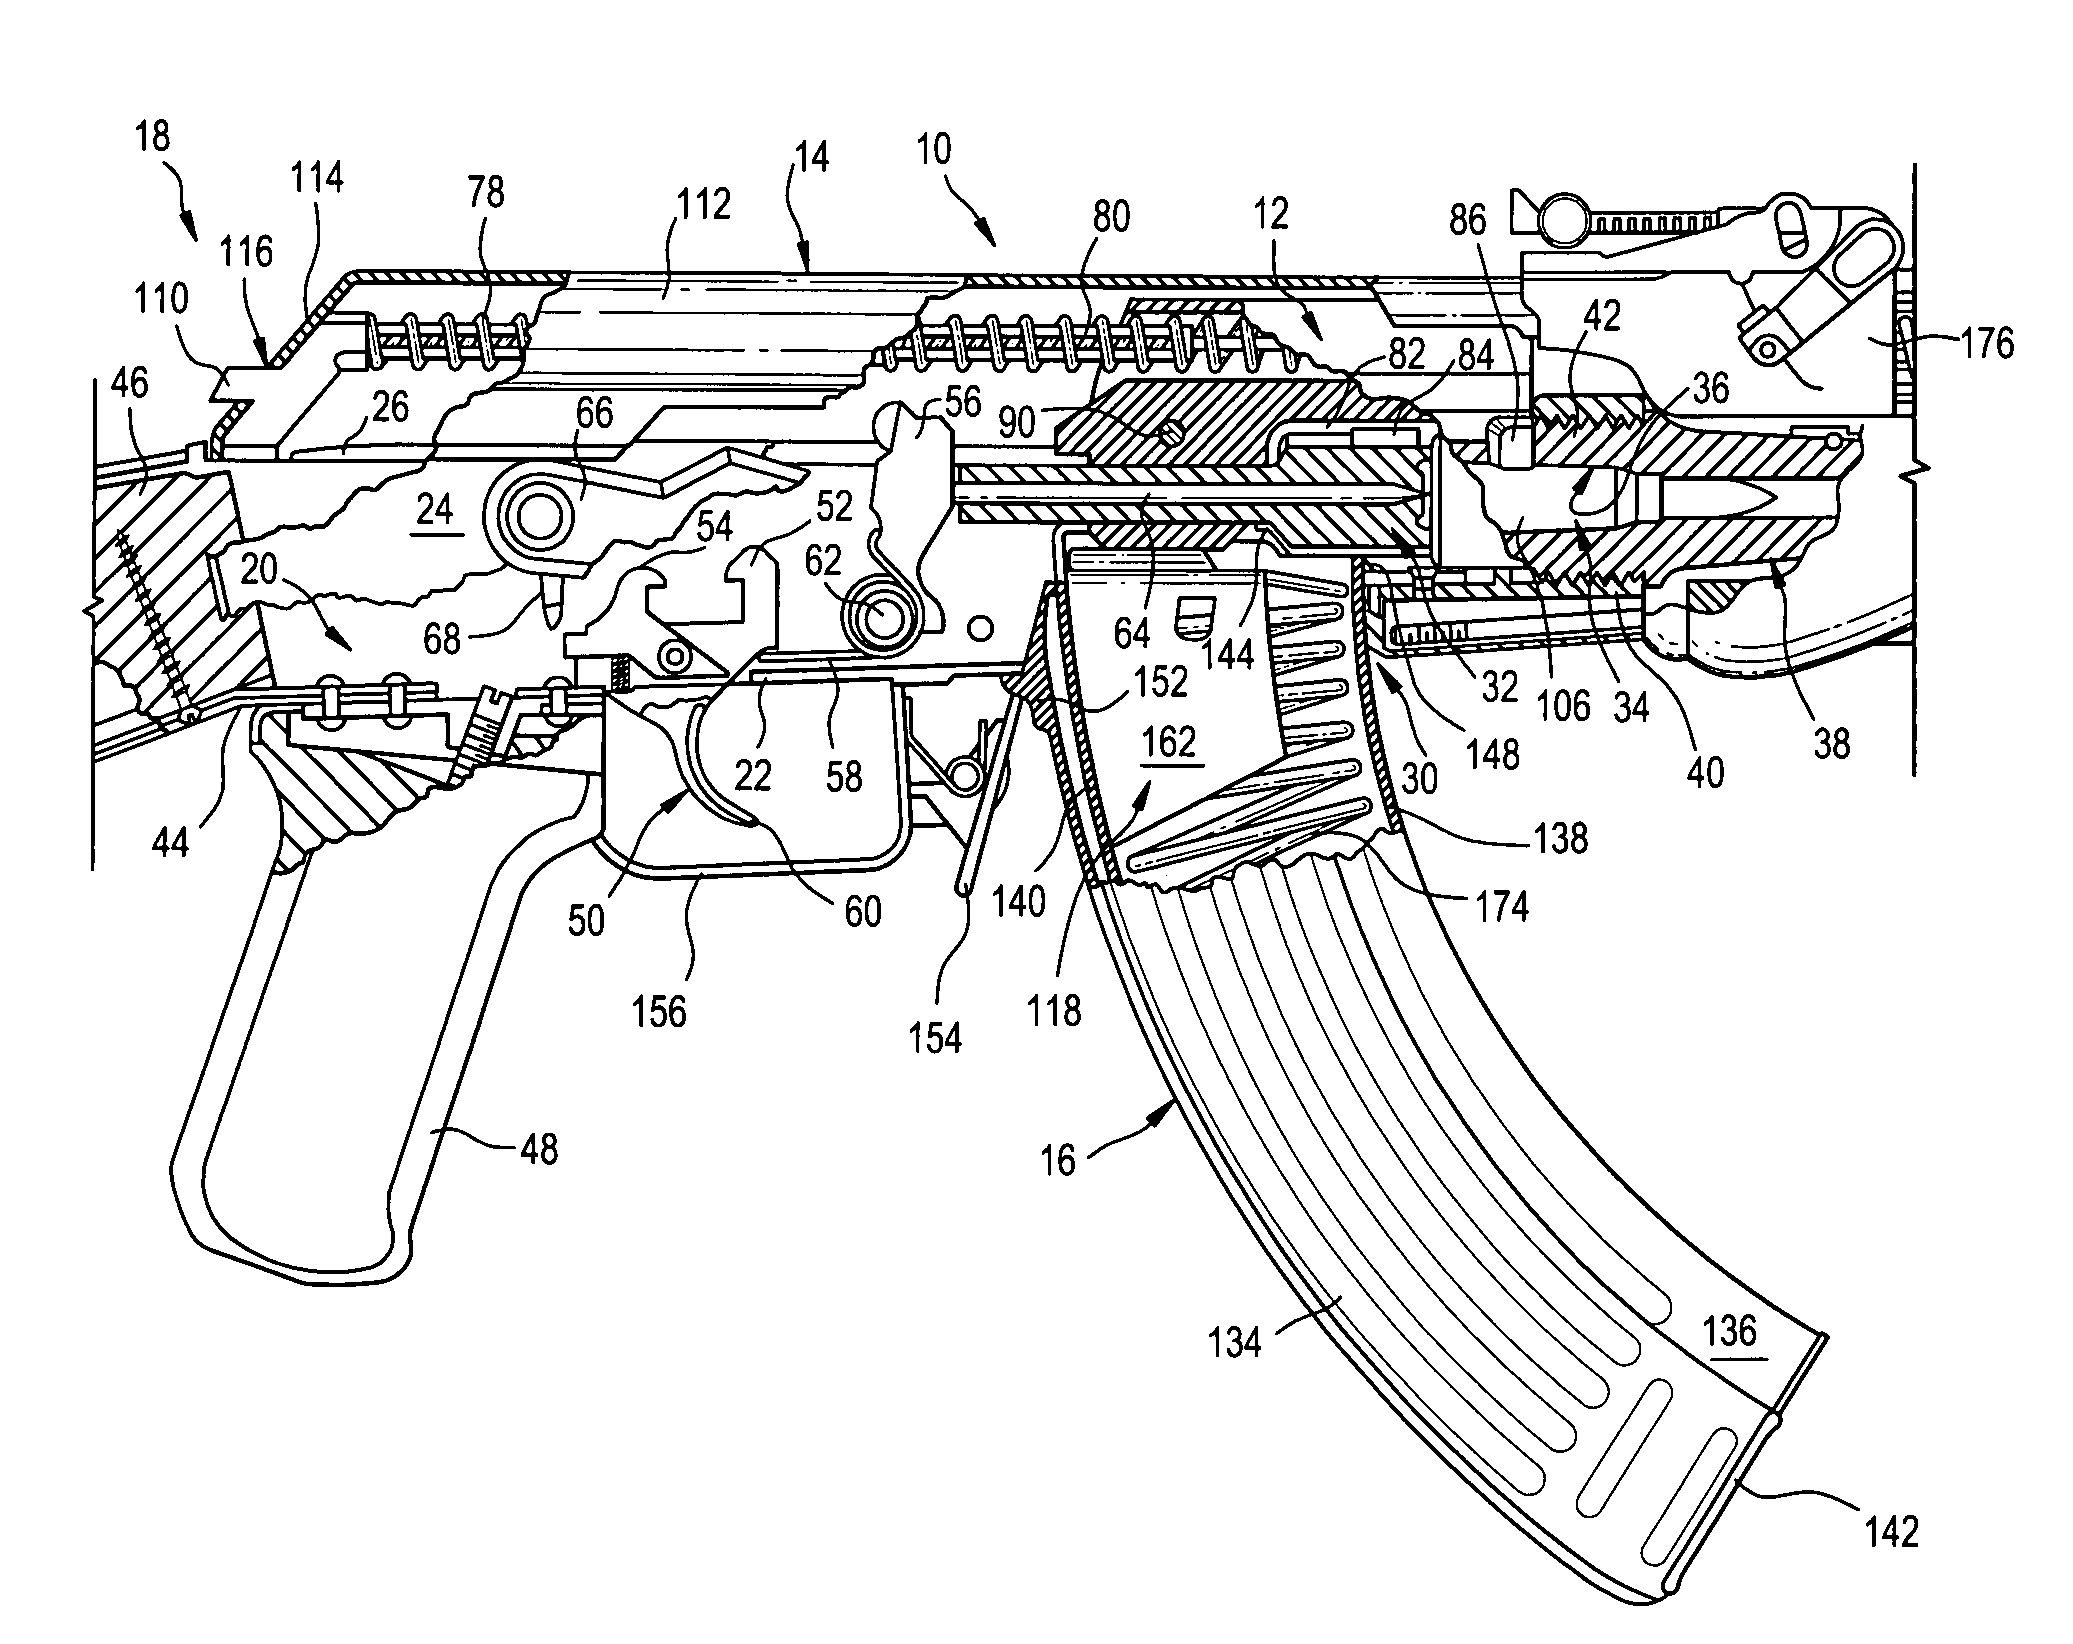 ak 47 receiver parts diagram dsl phone jack wiring centurylink blueprints schematics free engine image for